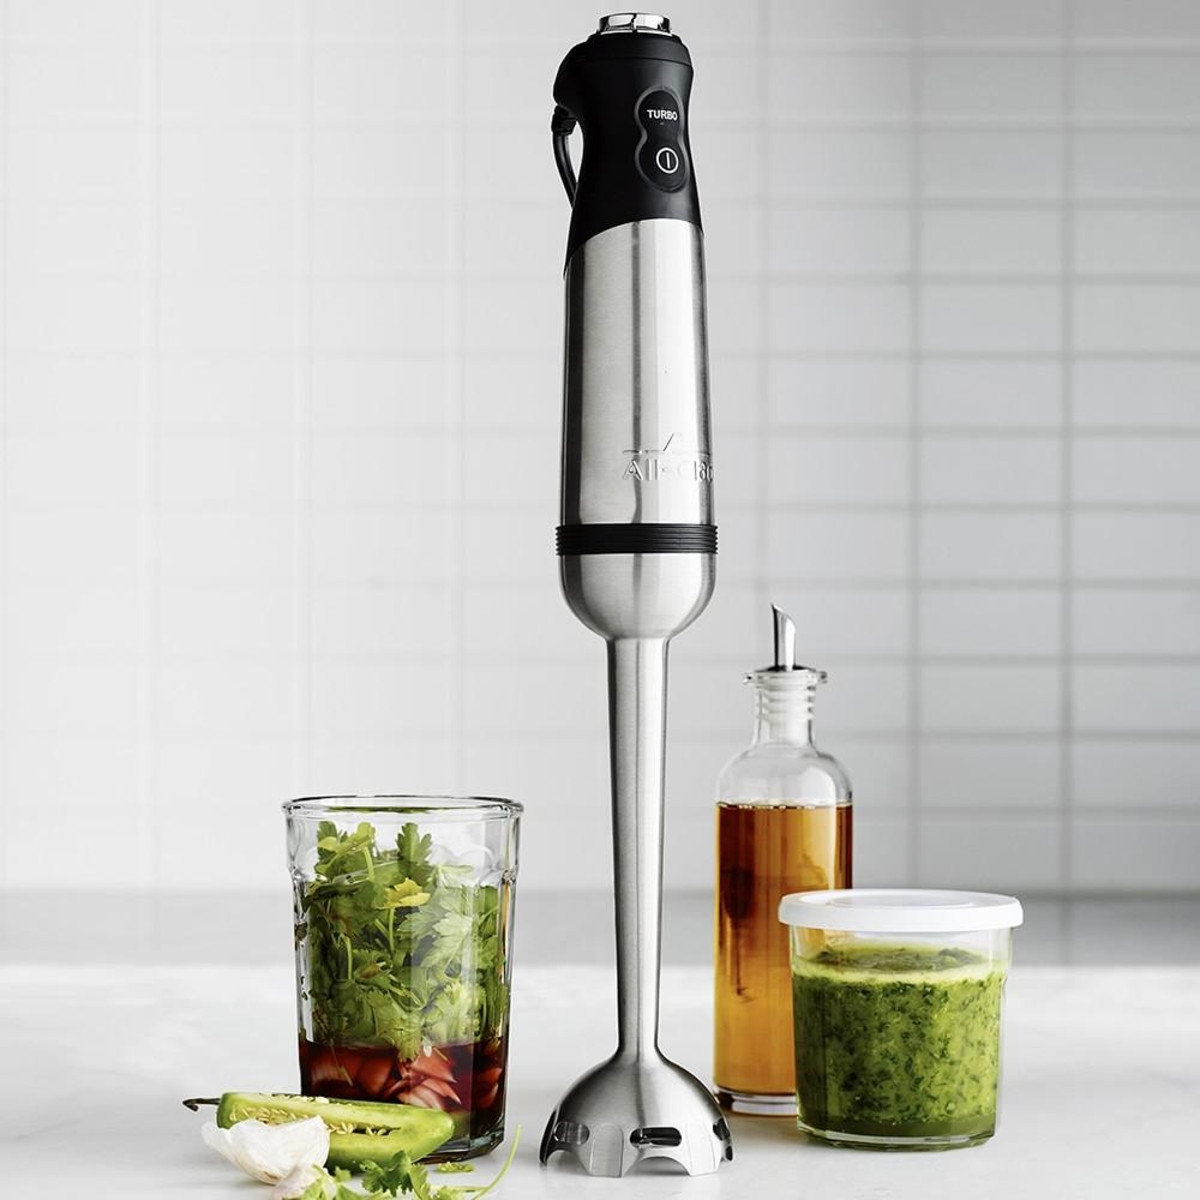 darla powell interiors miami gift guide immersion blender home chef kitchen essential